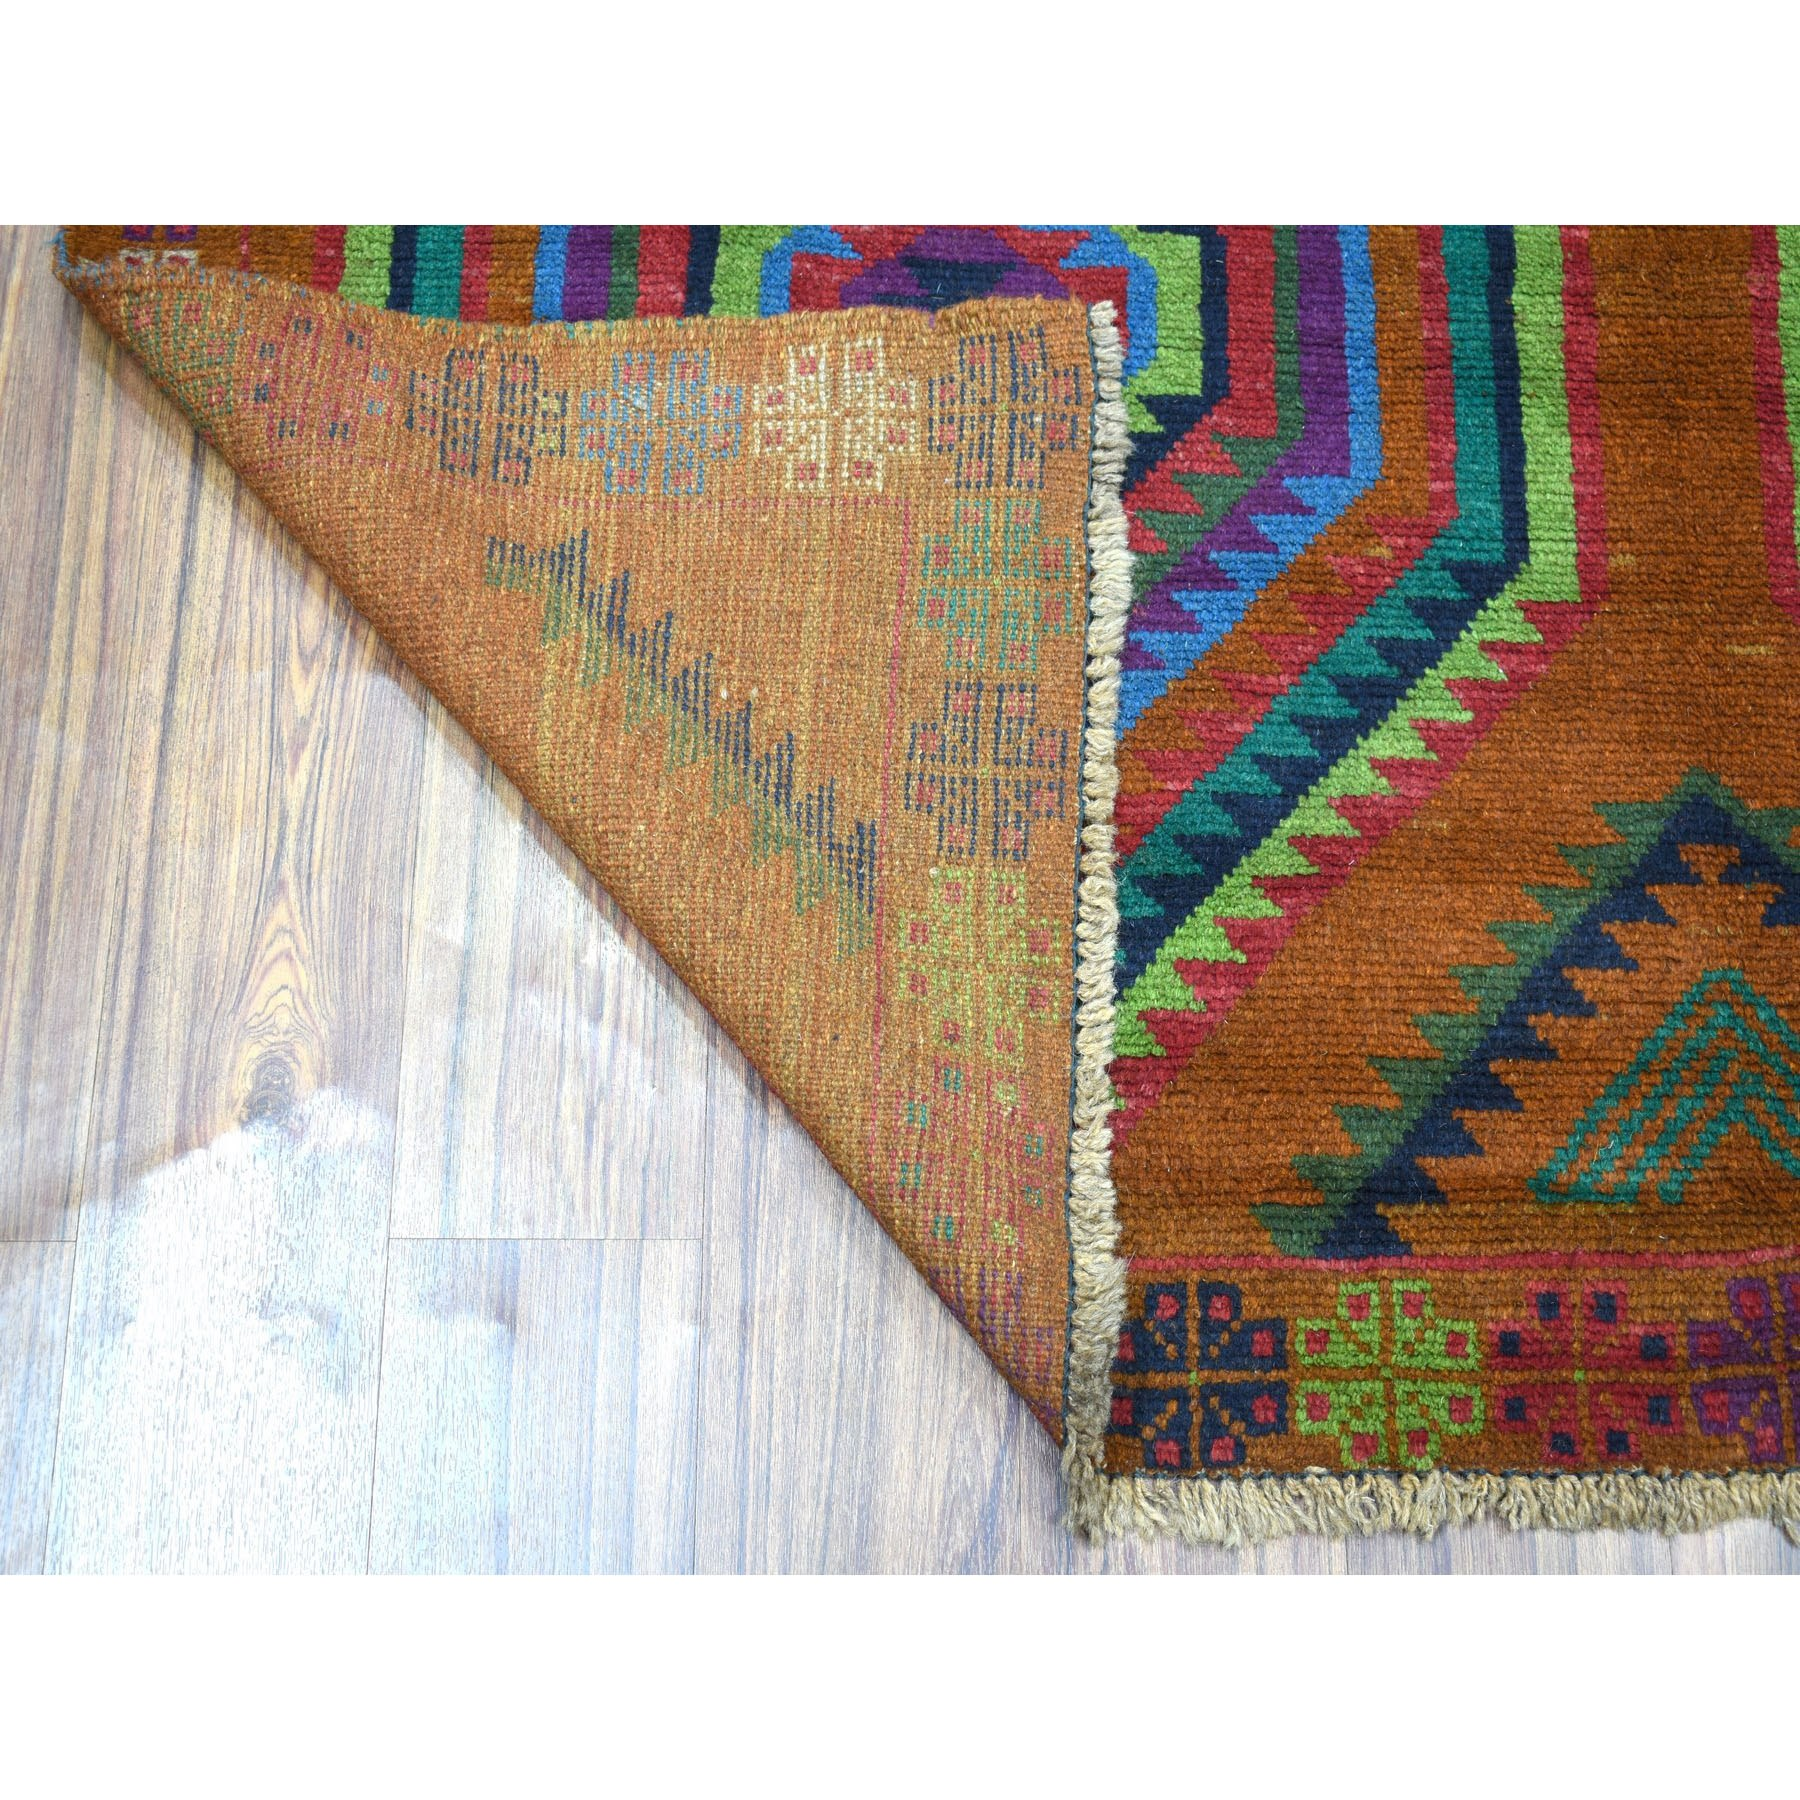 6'x8' Brown Colorful Afghan Baluch Hand Knotted Geometric Design Pure Wool Oriental Rug